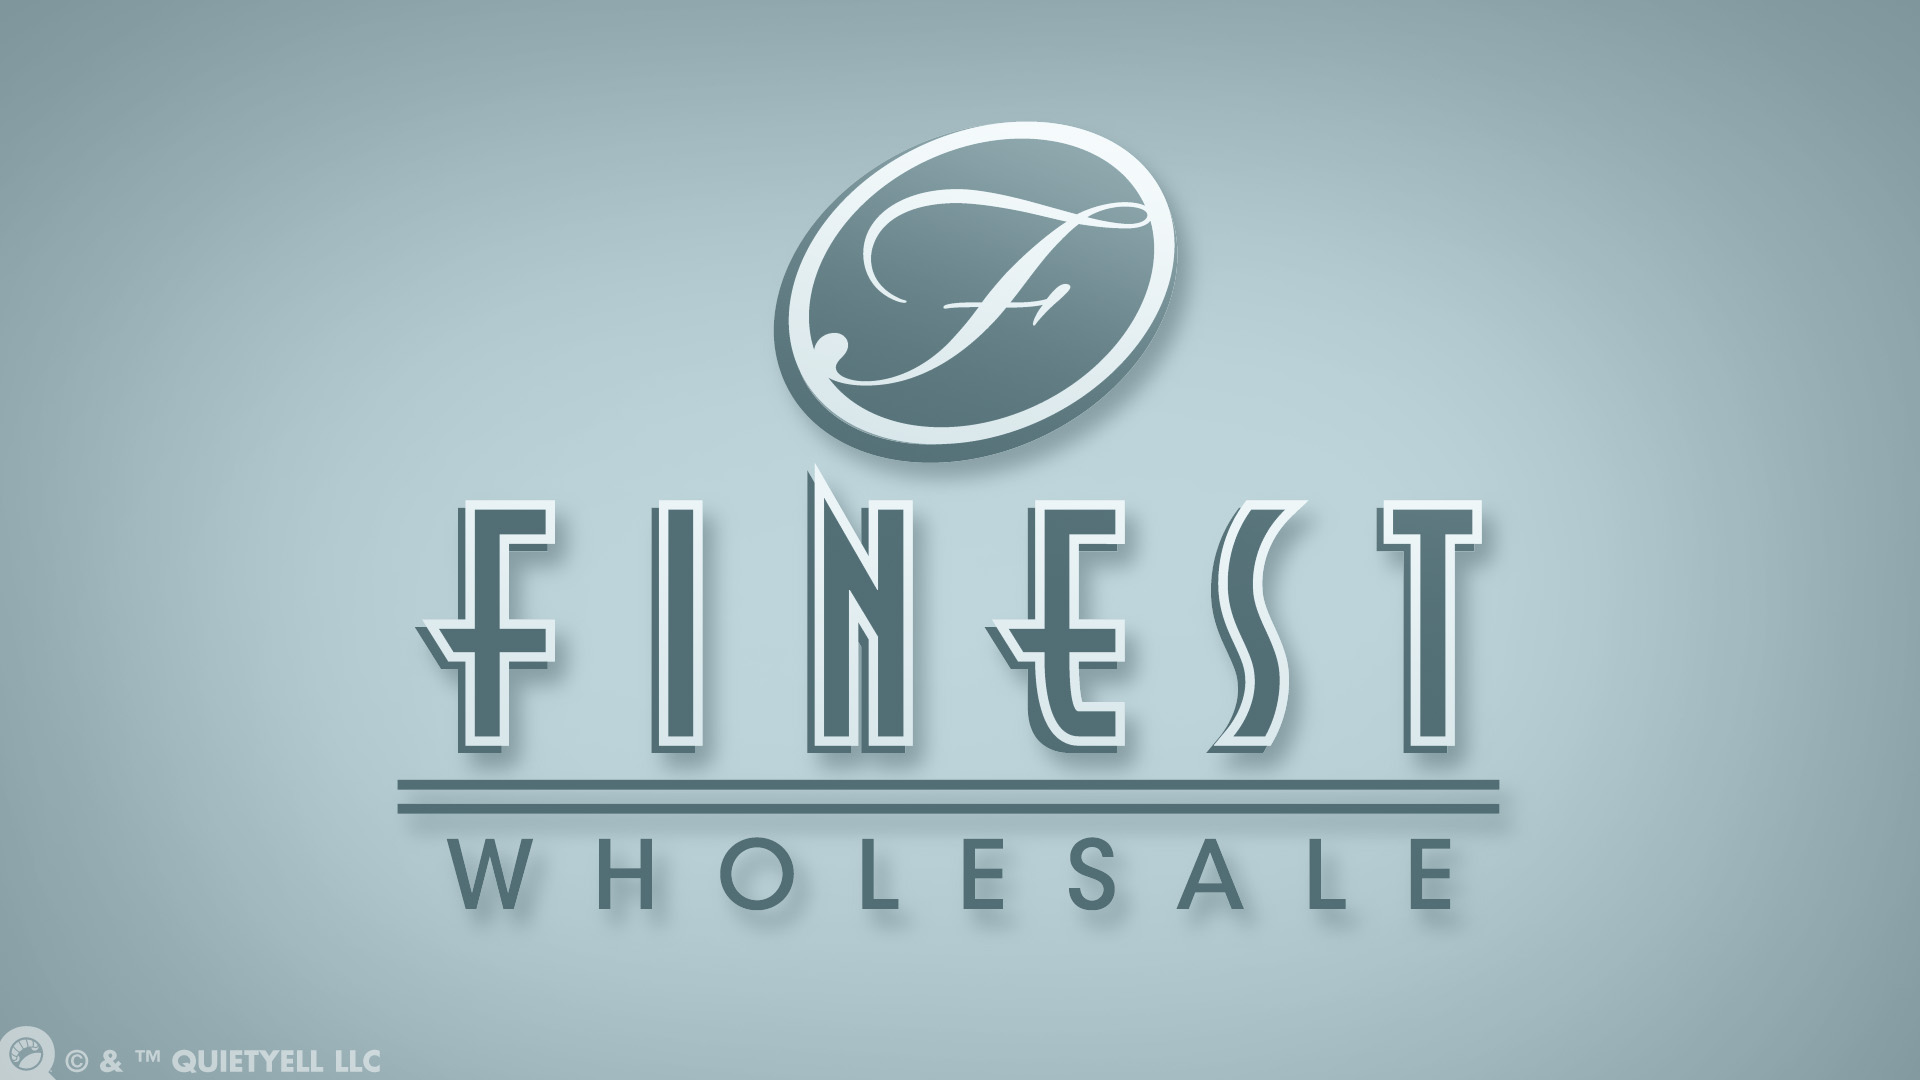 quietyell_branding_full_finestwholesale_01